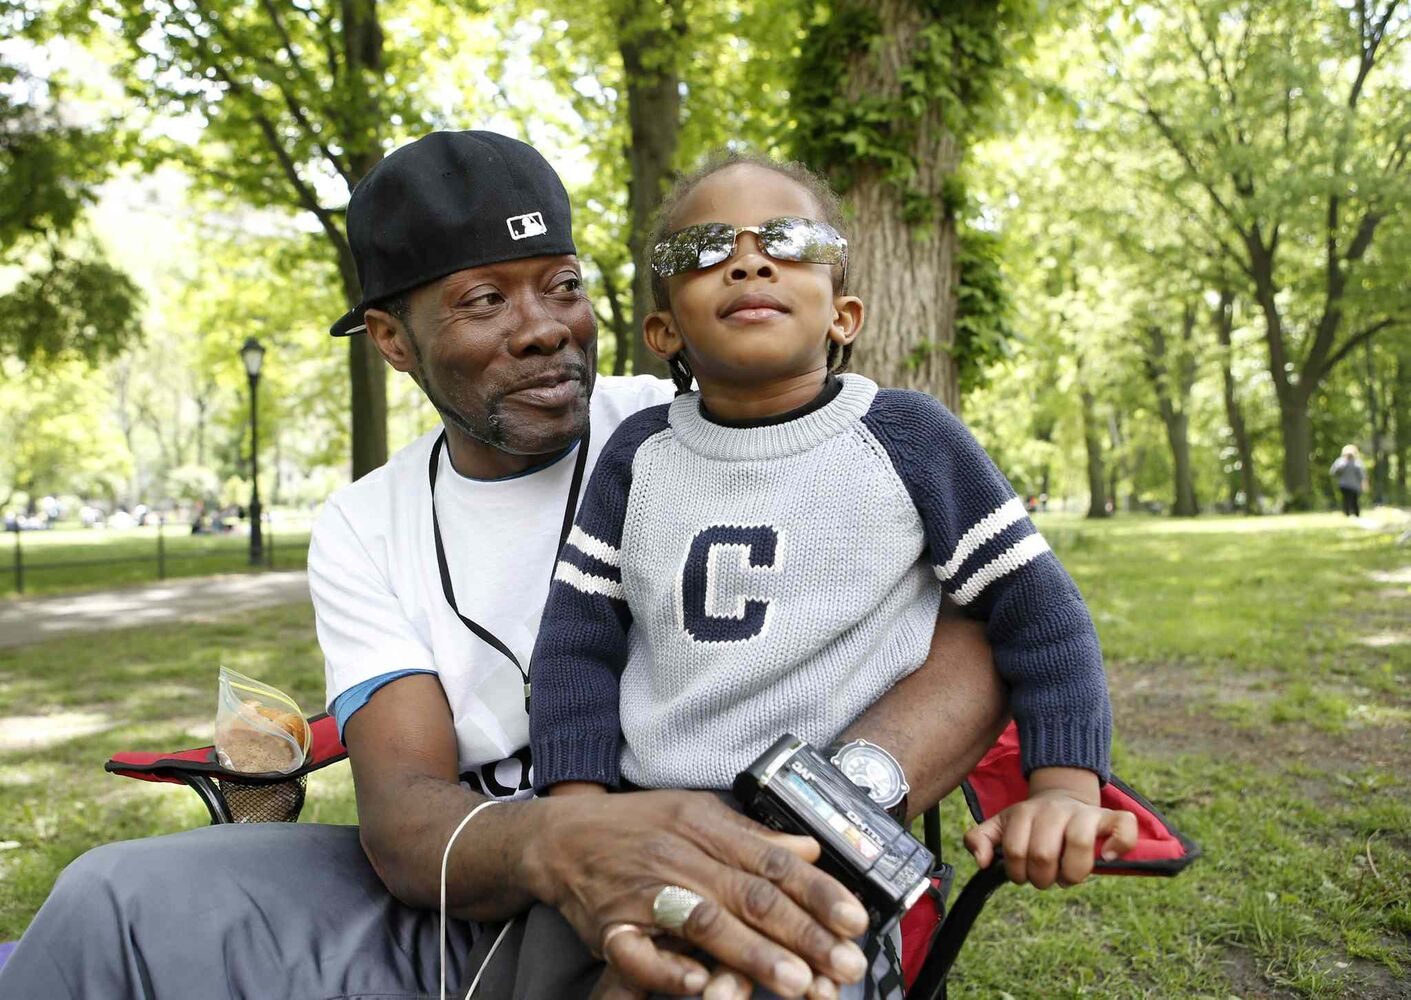 Jamez James, 47, of the Brooklyn borough of New York, holds his son, Melchi-Tzdec, during an outing in New York's Central Park. Before becoming a father, James said,